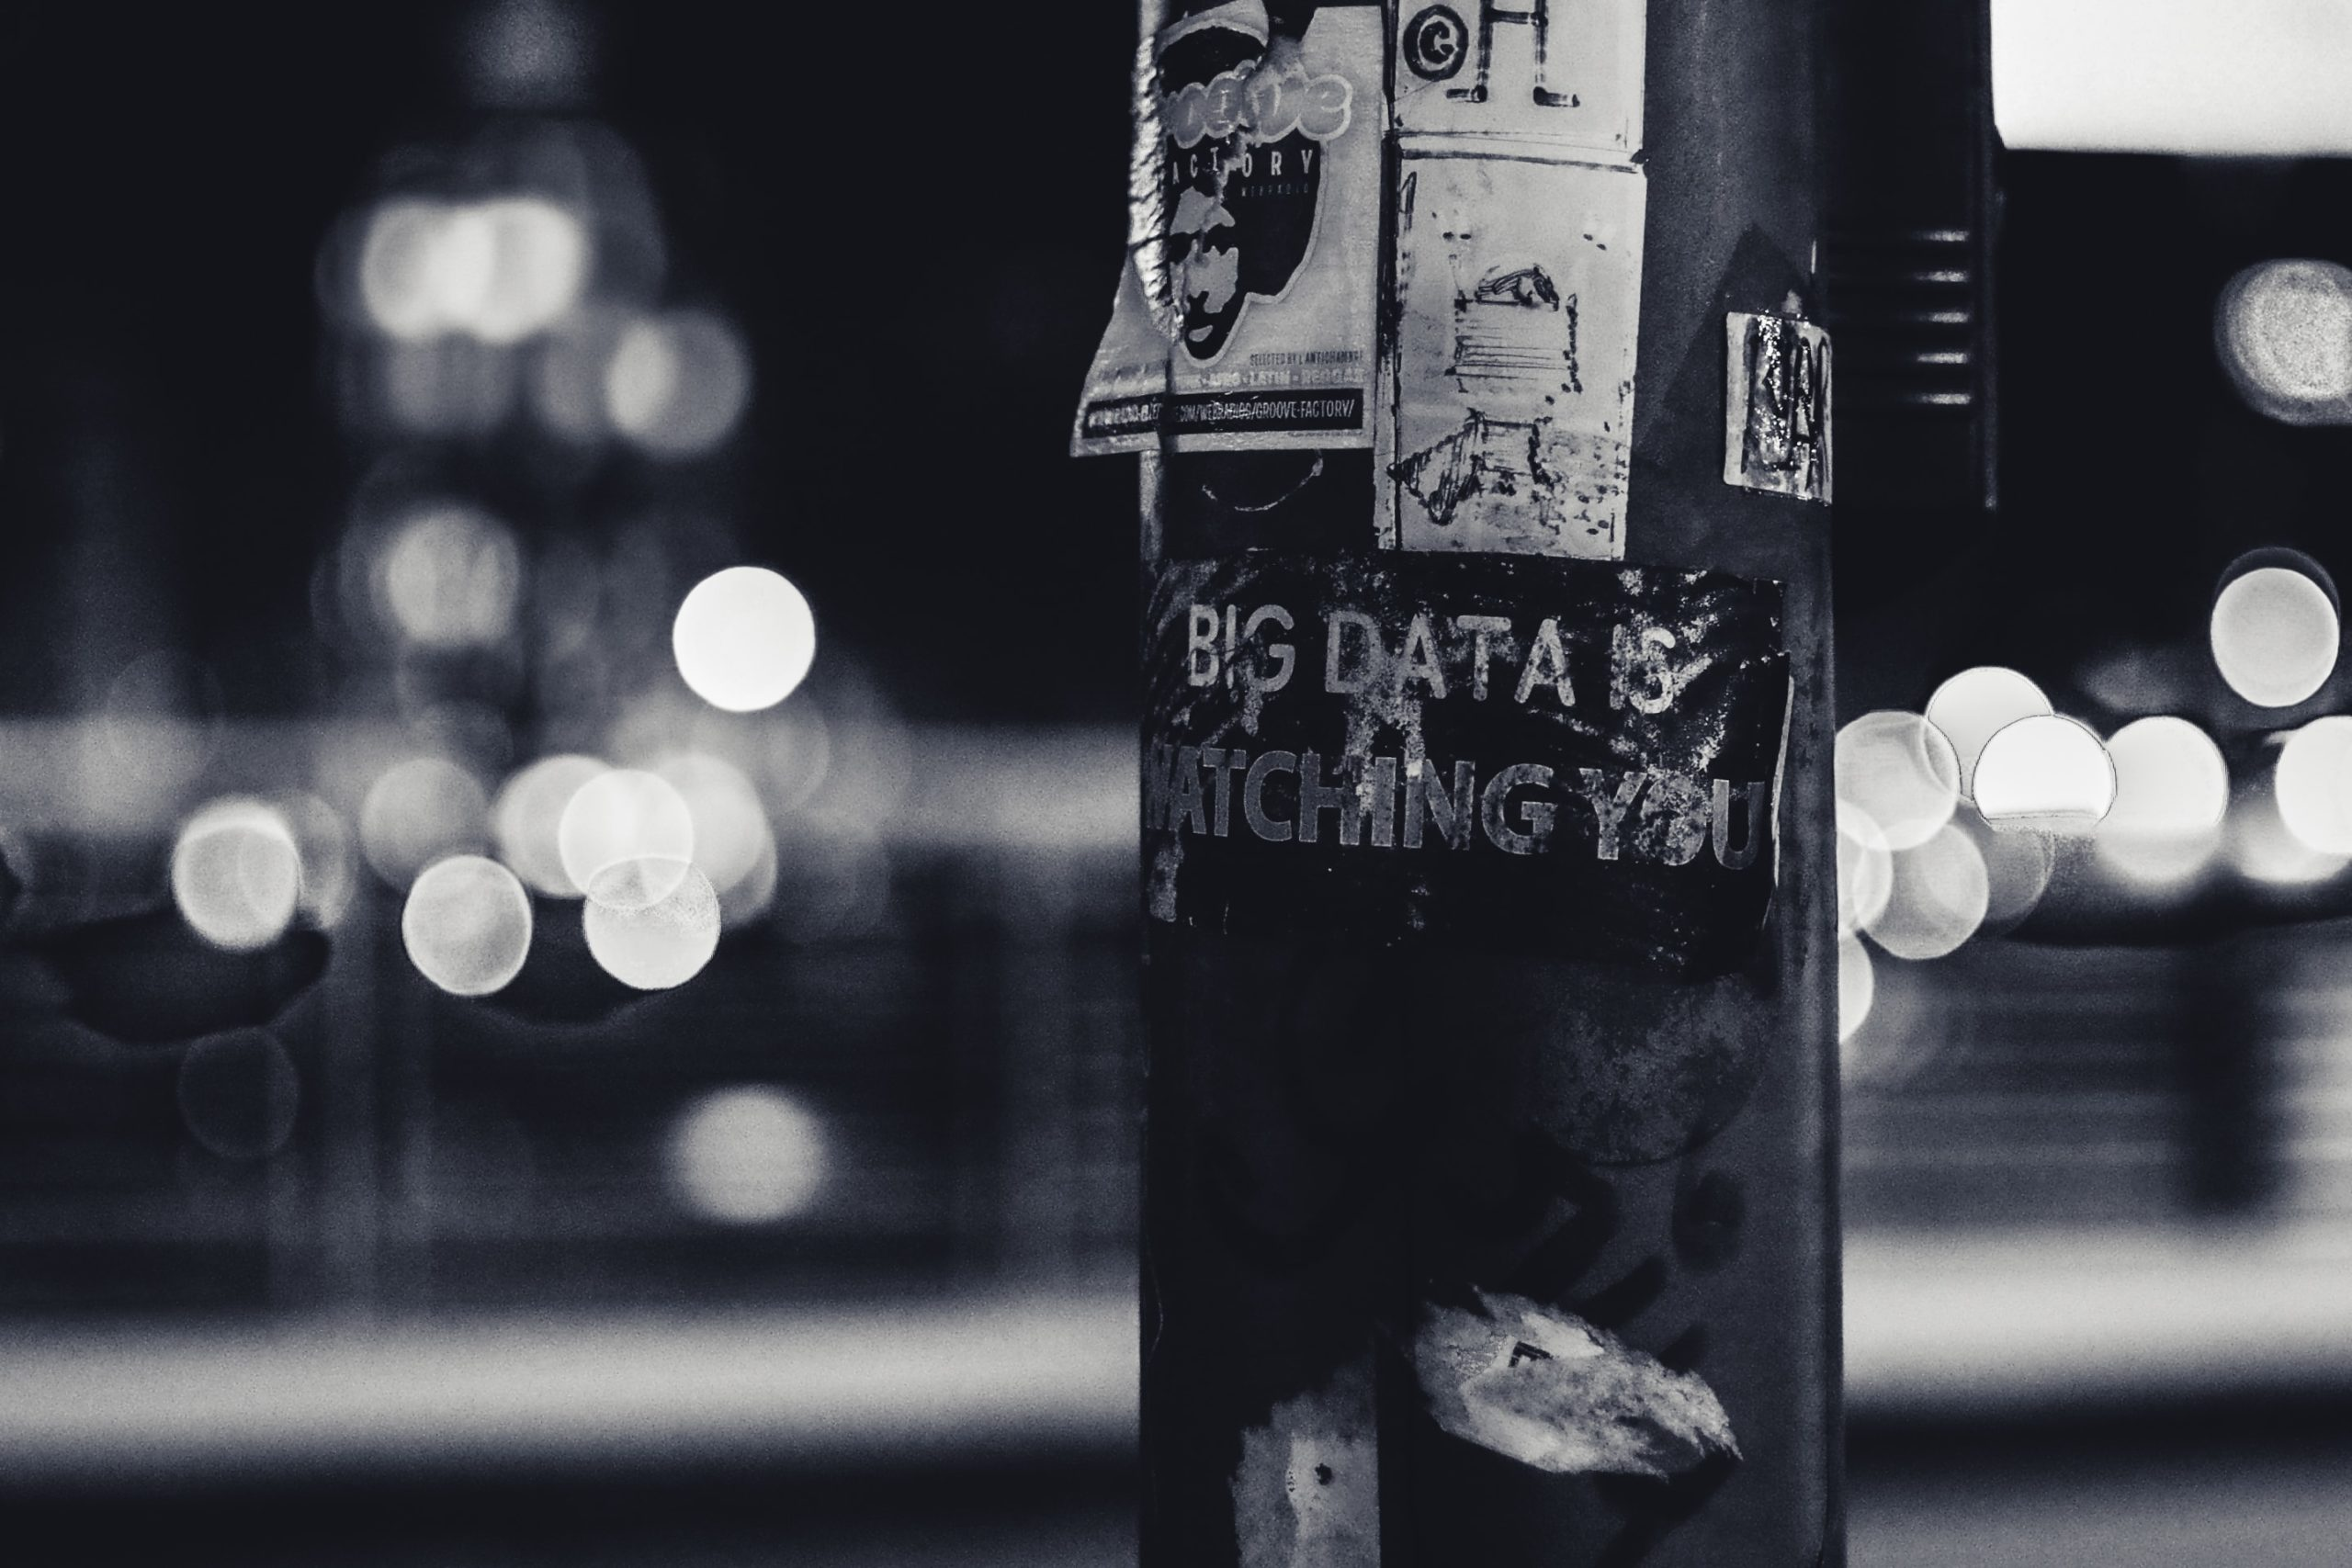 """Pole with sticker reading """"Big Data is Watching You"""". Photo by ev on Unsplash"""